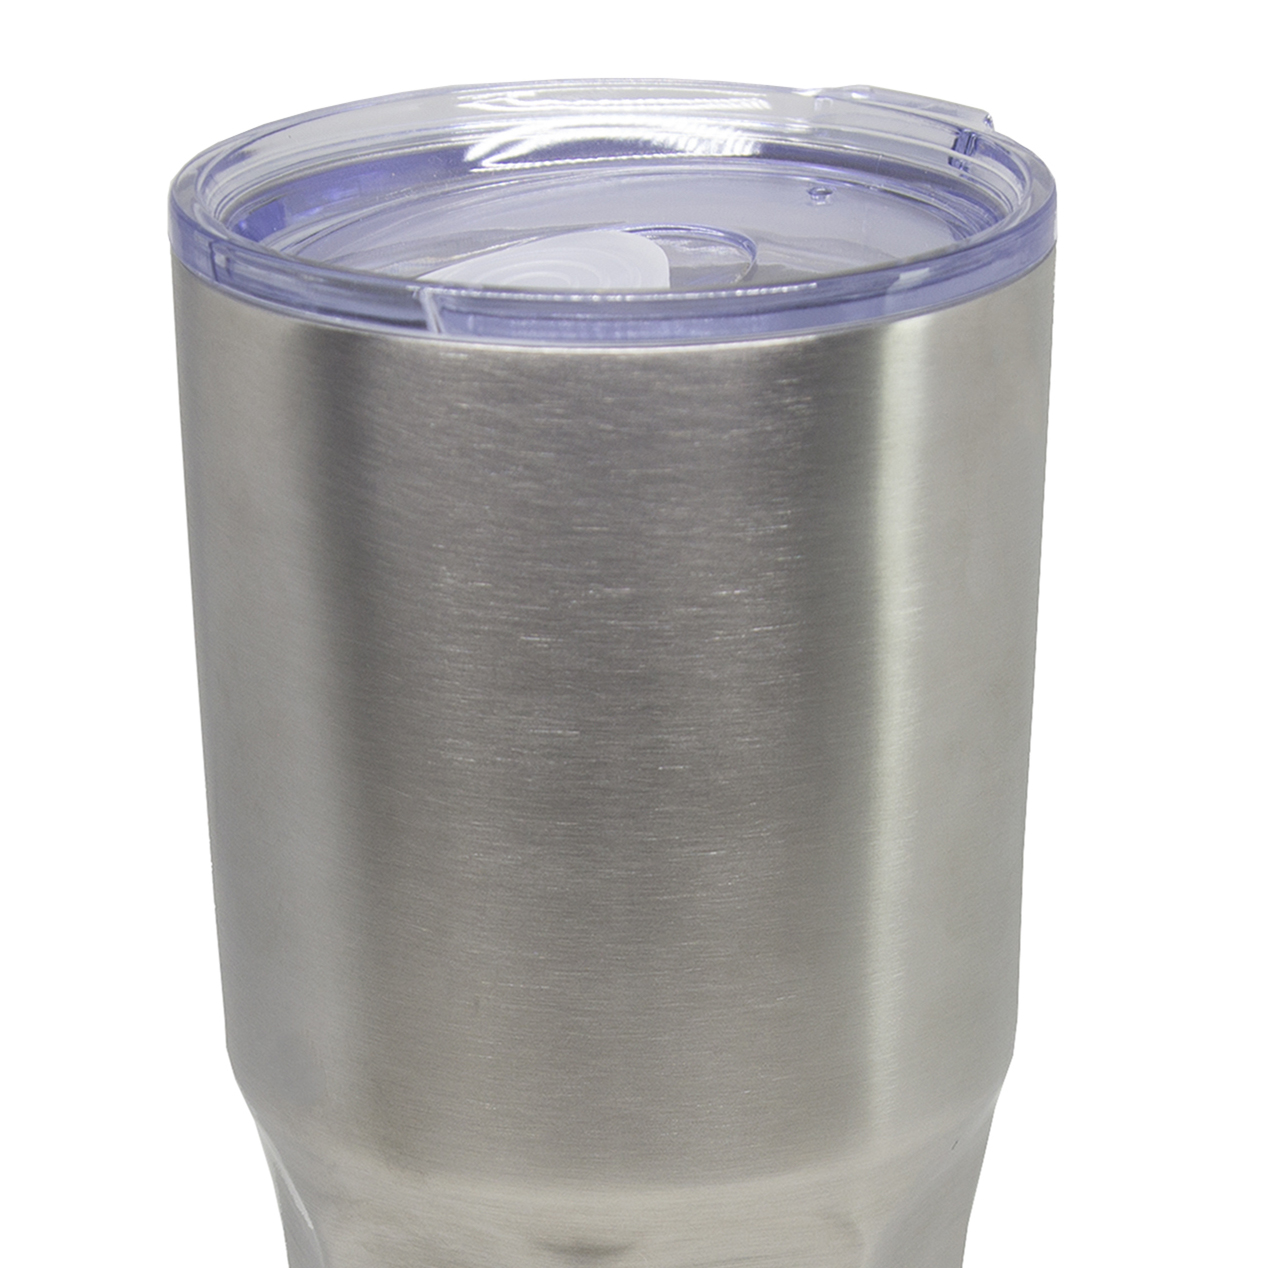 Stainless Steel Insulation : Insulated stainless steel oz travel beverage tumbler